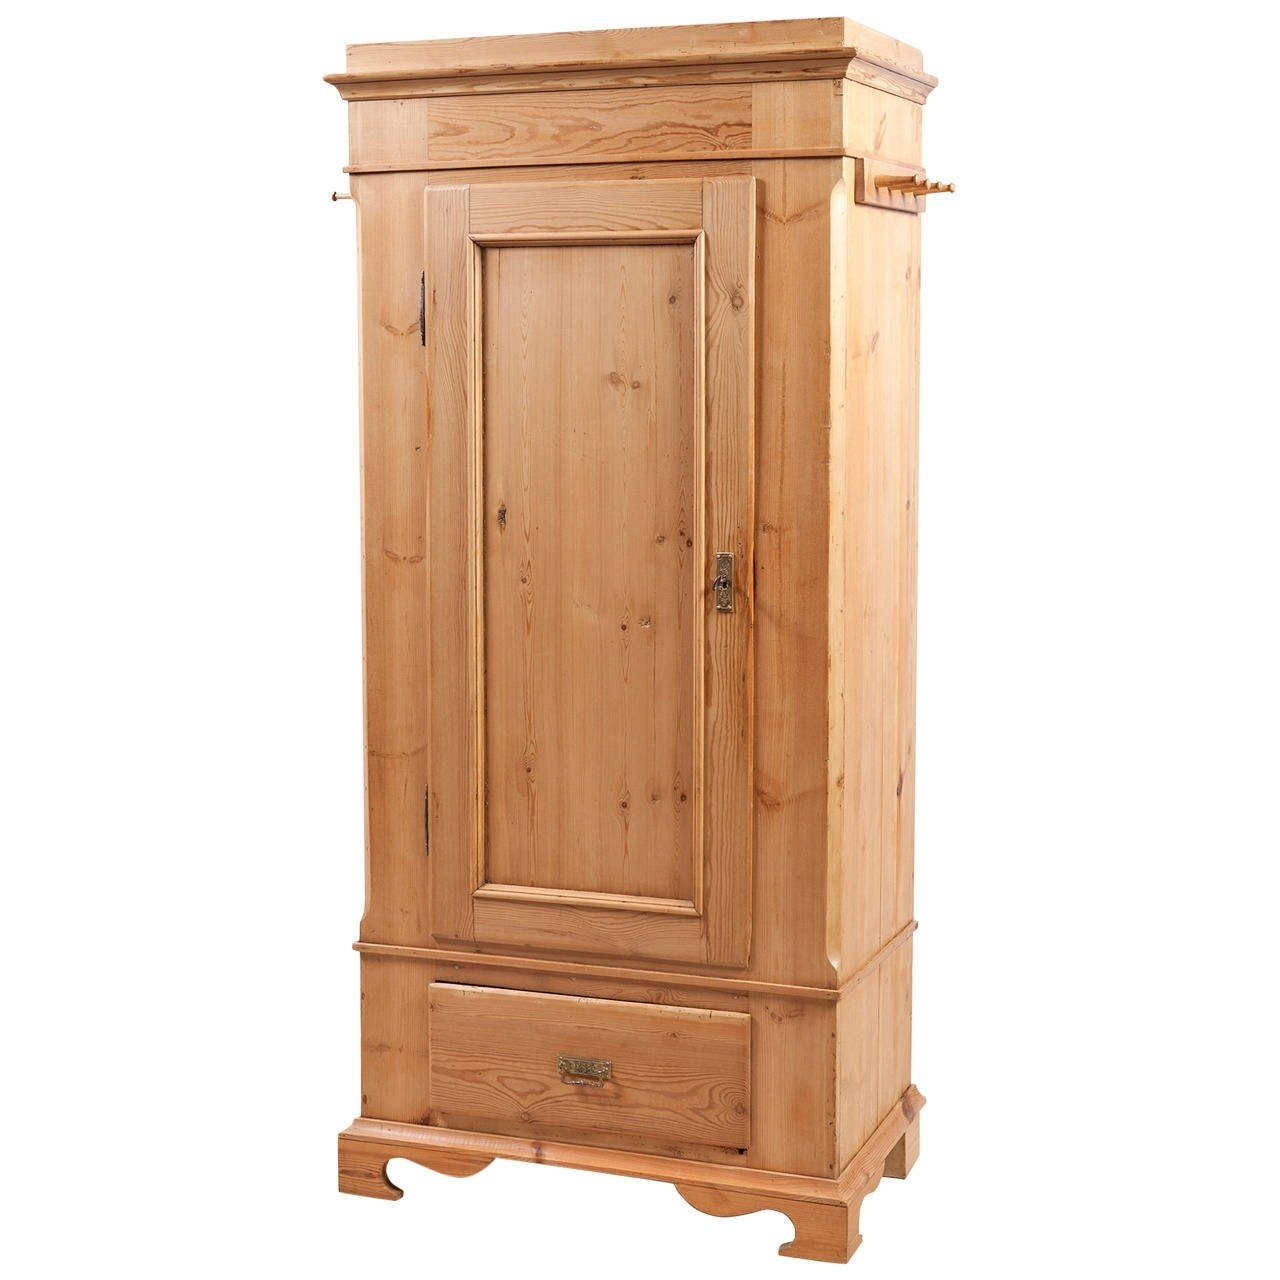 Single Pine Wardrobes In Most Current Single Door Danish Wardrobe Armoire In Pine, Circa 1845 At 1stdibs (View 7 of 15)